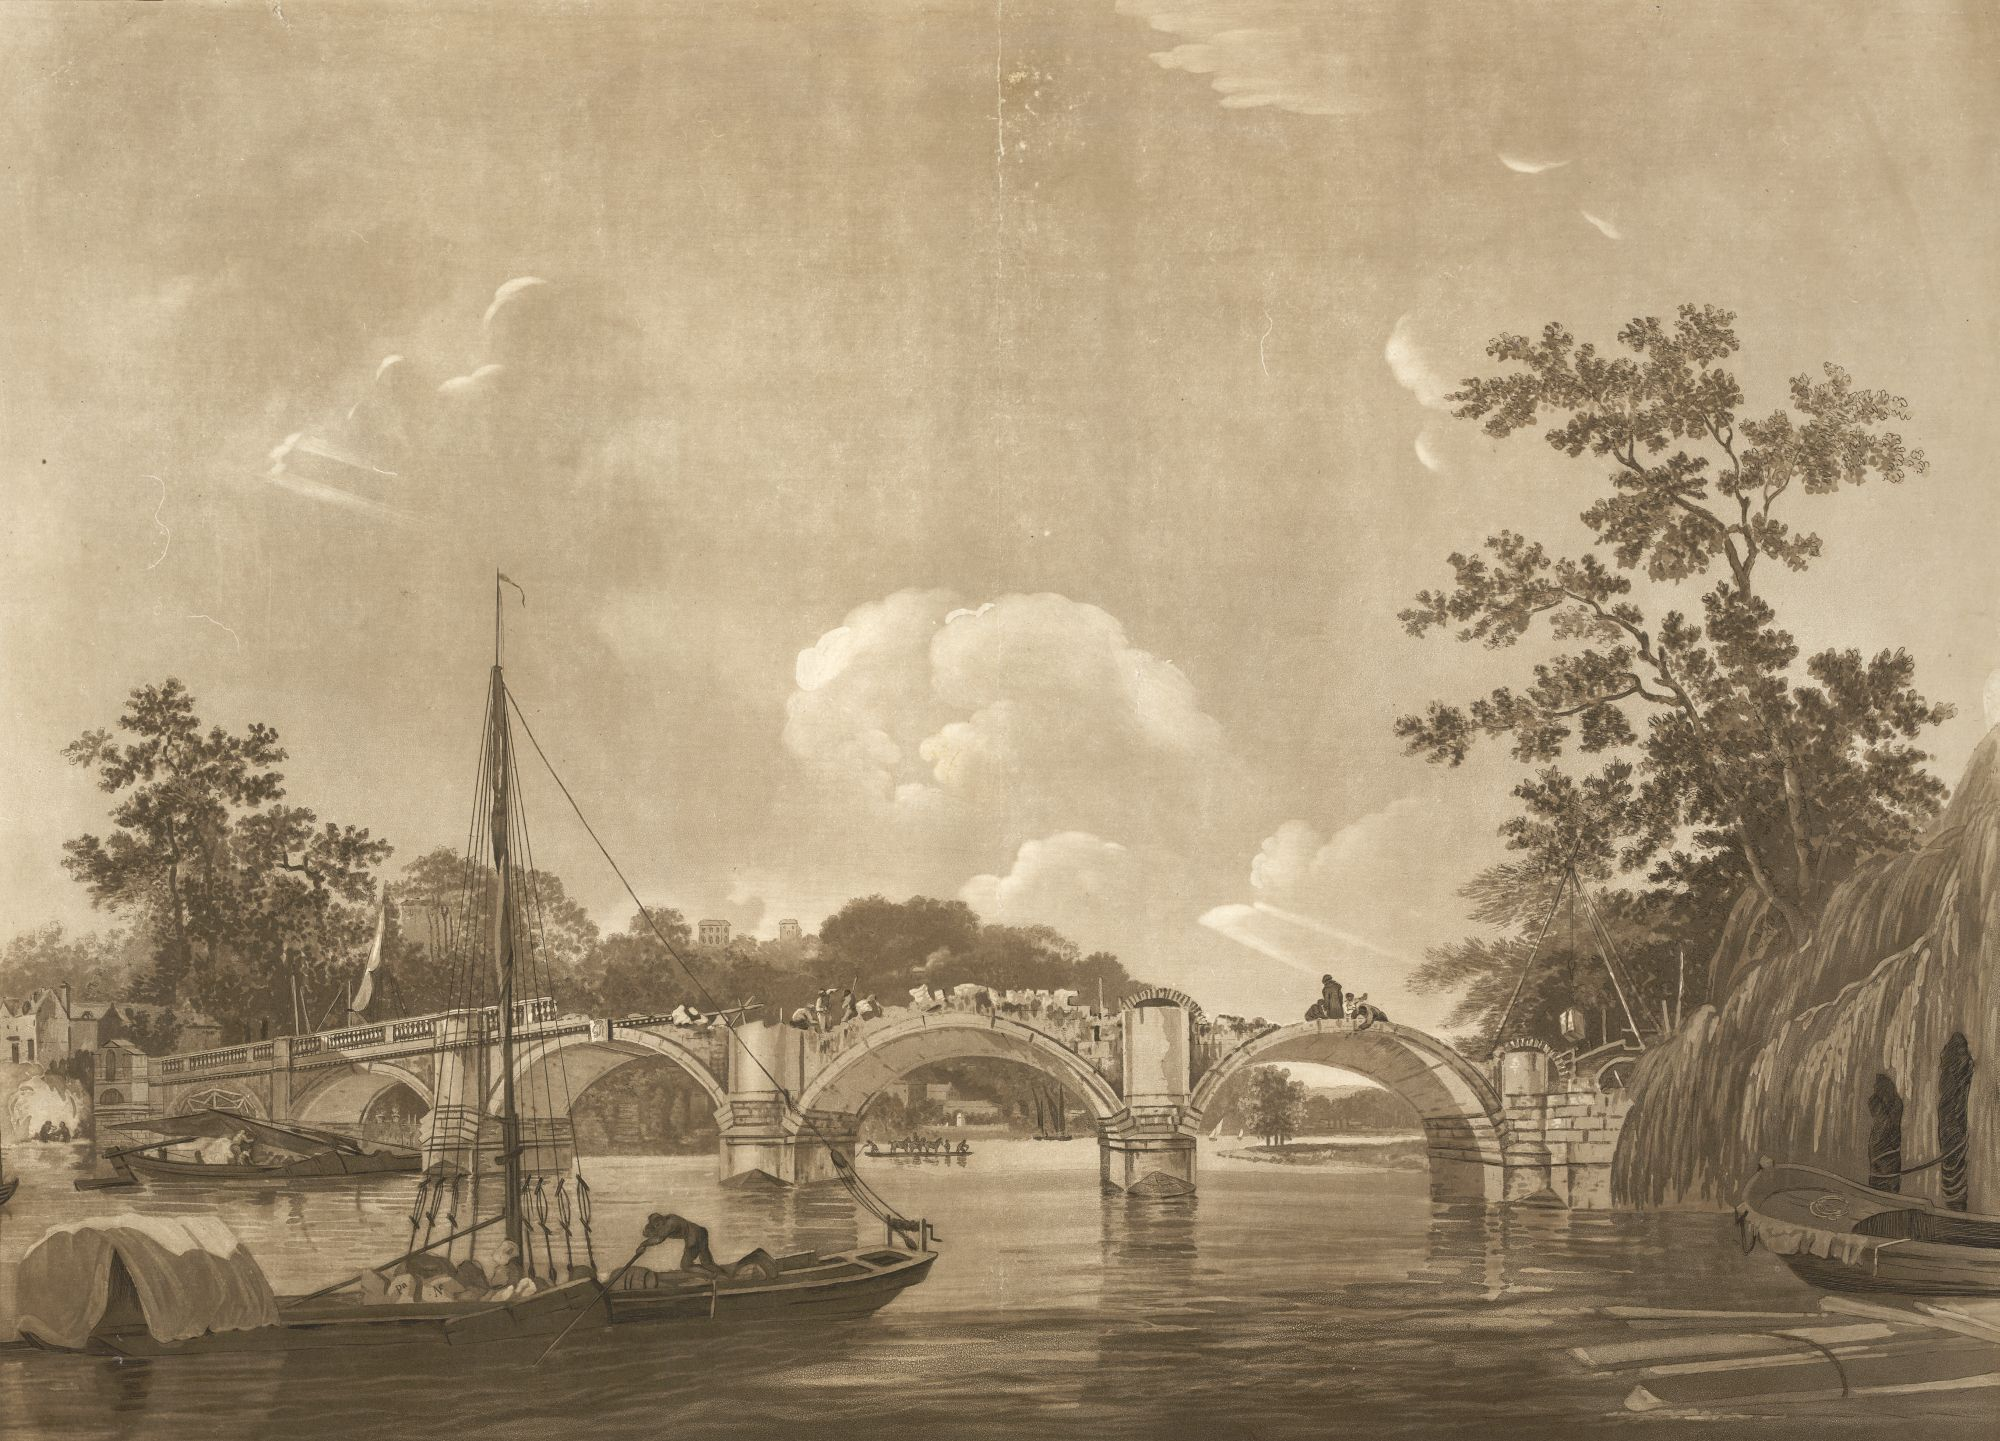 View of Richmond Bridge, the elegant bridge under construction with one of the arches still raw brick and the balustrade half-way across the bridge, workmen at work on the span, barges and boats on the water to the foreground with a horse ferry beyond, a boat tied up by the willows on the right shore, houses amongst the trees to the far bank.  The BM lists this as part of a series called 'Antiquities'.  Titled 'View of Richmond Bridge, by Hodges, 1776; engraved by Green and Jukes.' in the Catalogue of Maps, Prints, Drawings, etc., forming the geographical and topographical collection attached to the Library of his late Majesty King George the third, etc., London, 1829.  Citation/references note: Whitman, Alfred, British Mezzotinters: Valentine Green, London, A H Bullen, 1902, 315